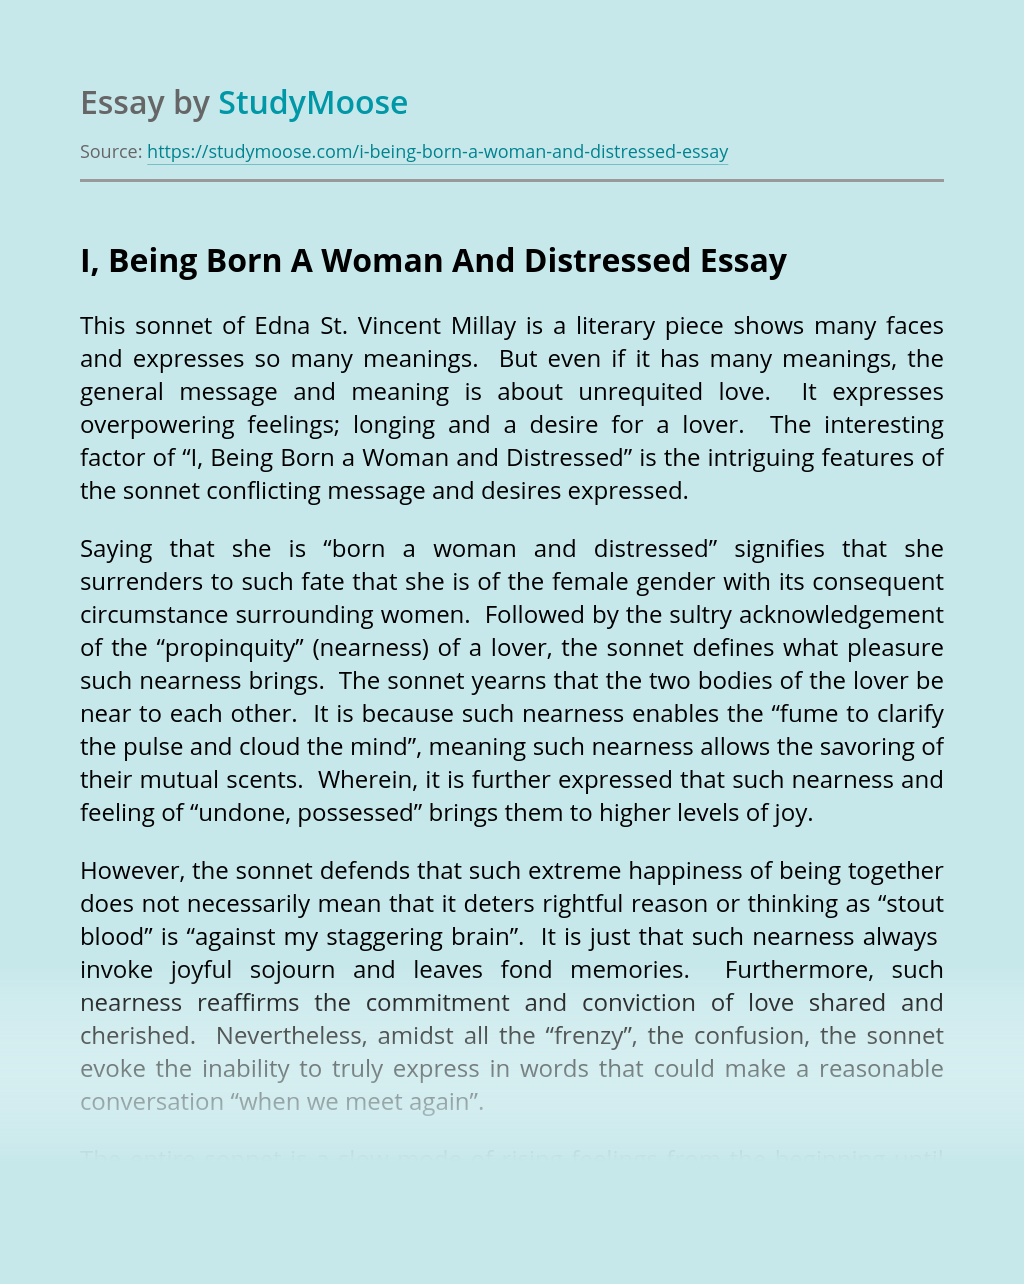 I, Being Born A Woman And Distressed